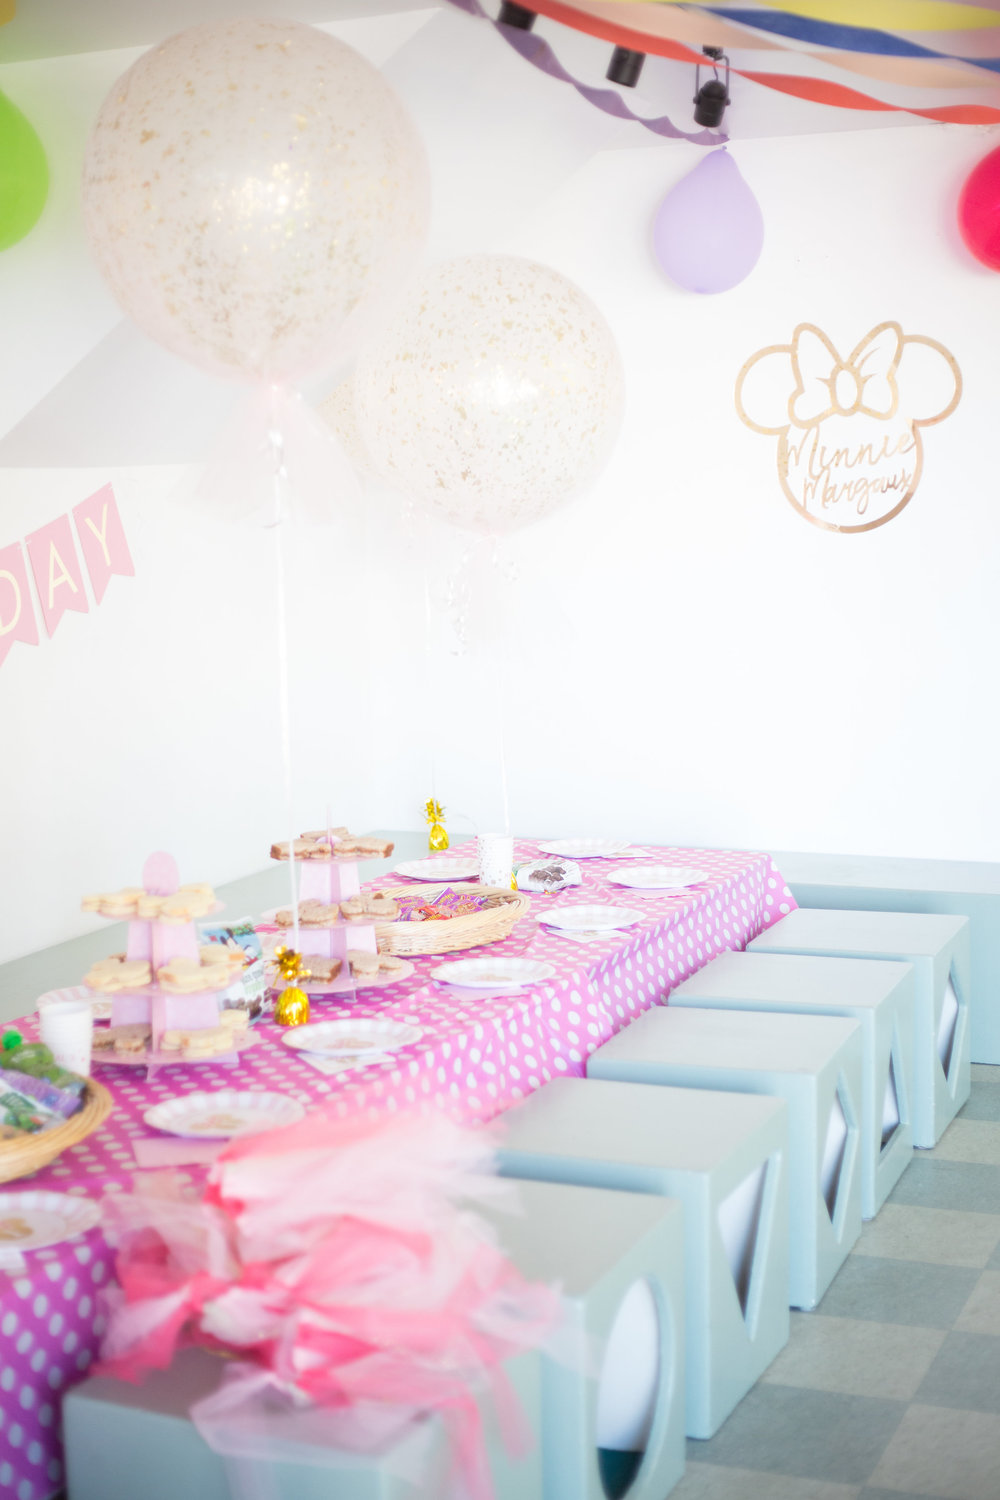 Margaux'_1st_Birthday_01.jpg